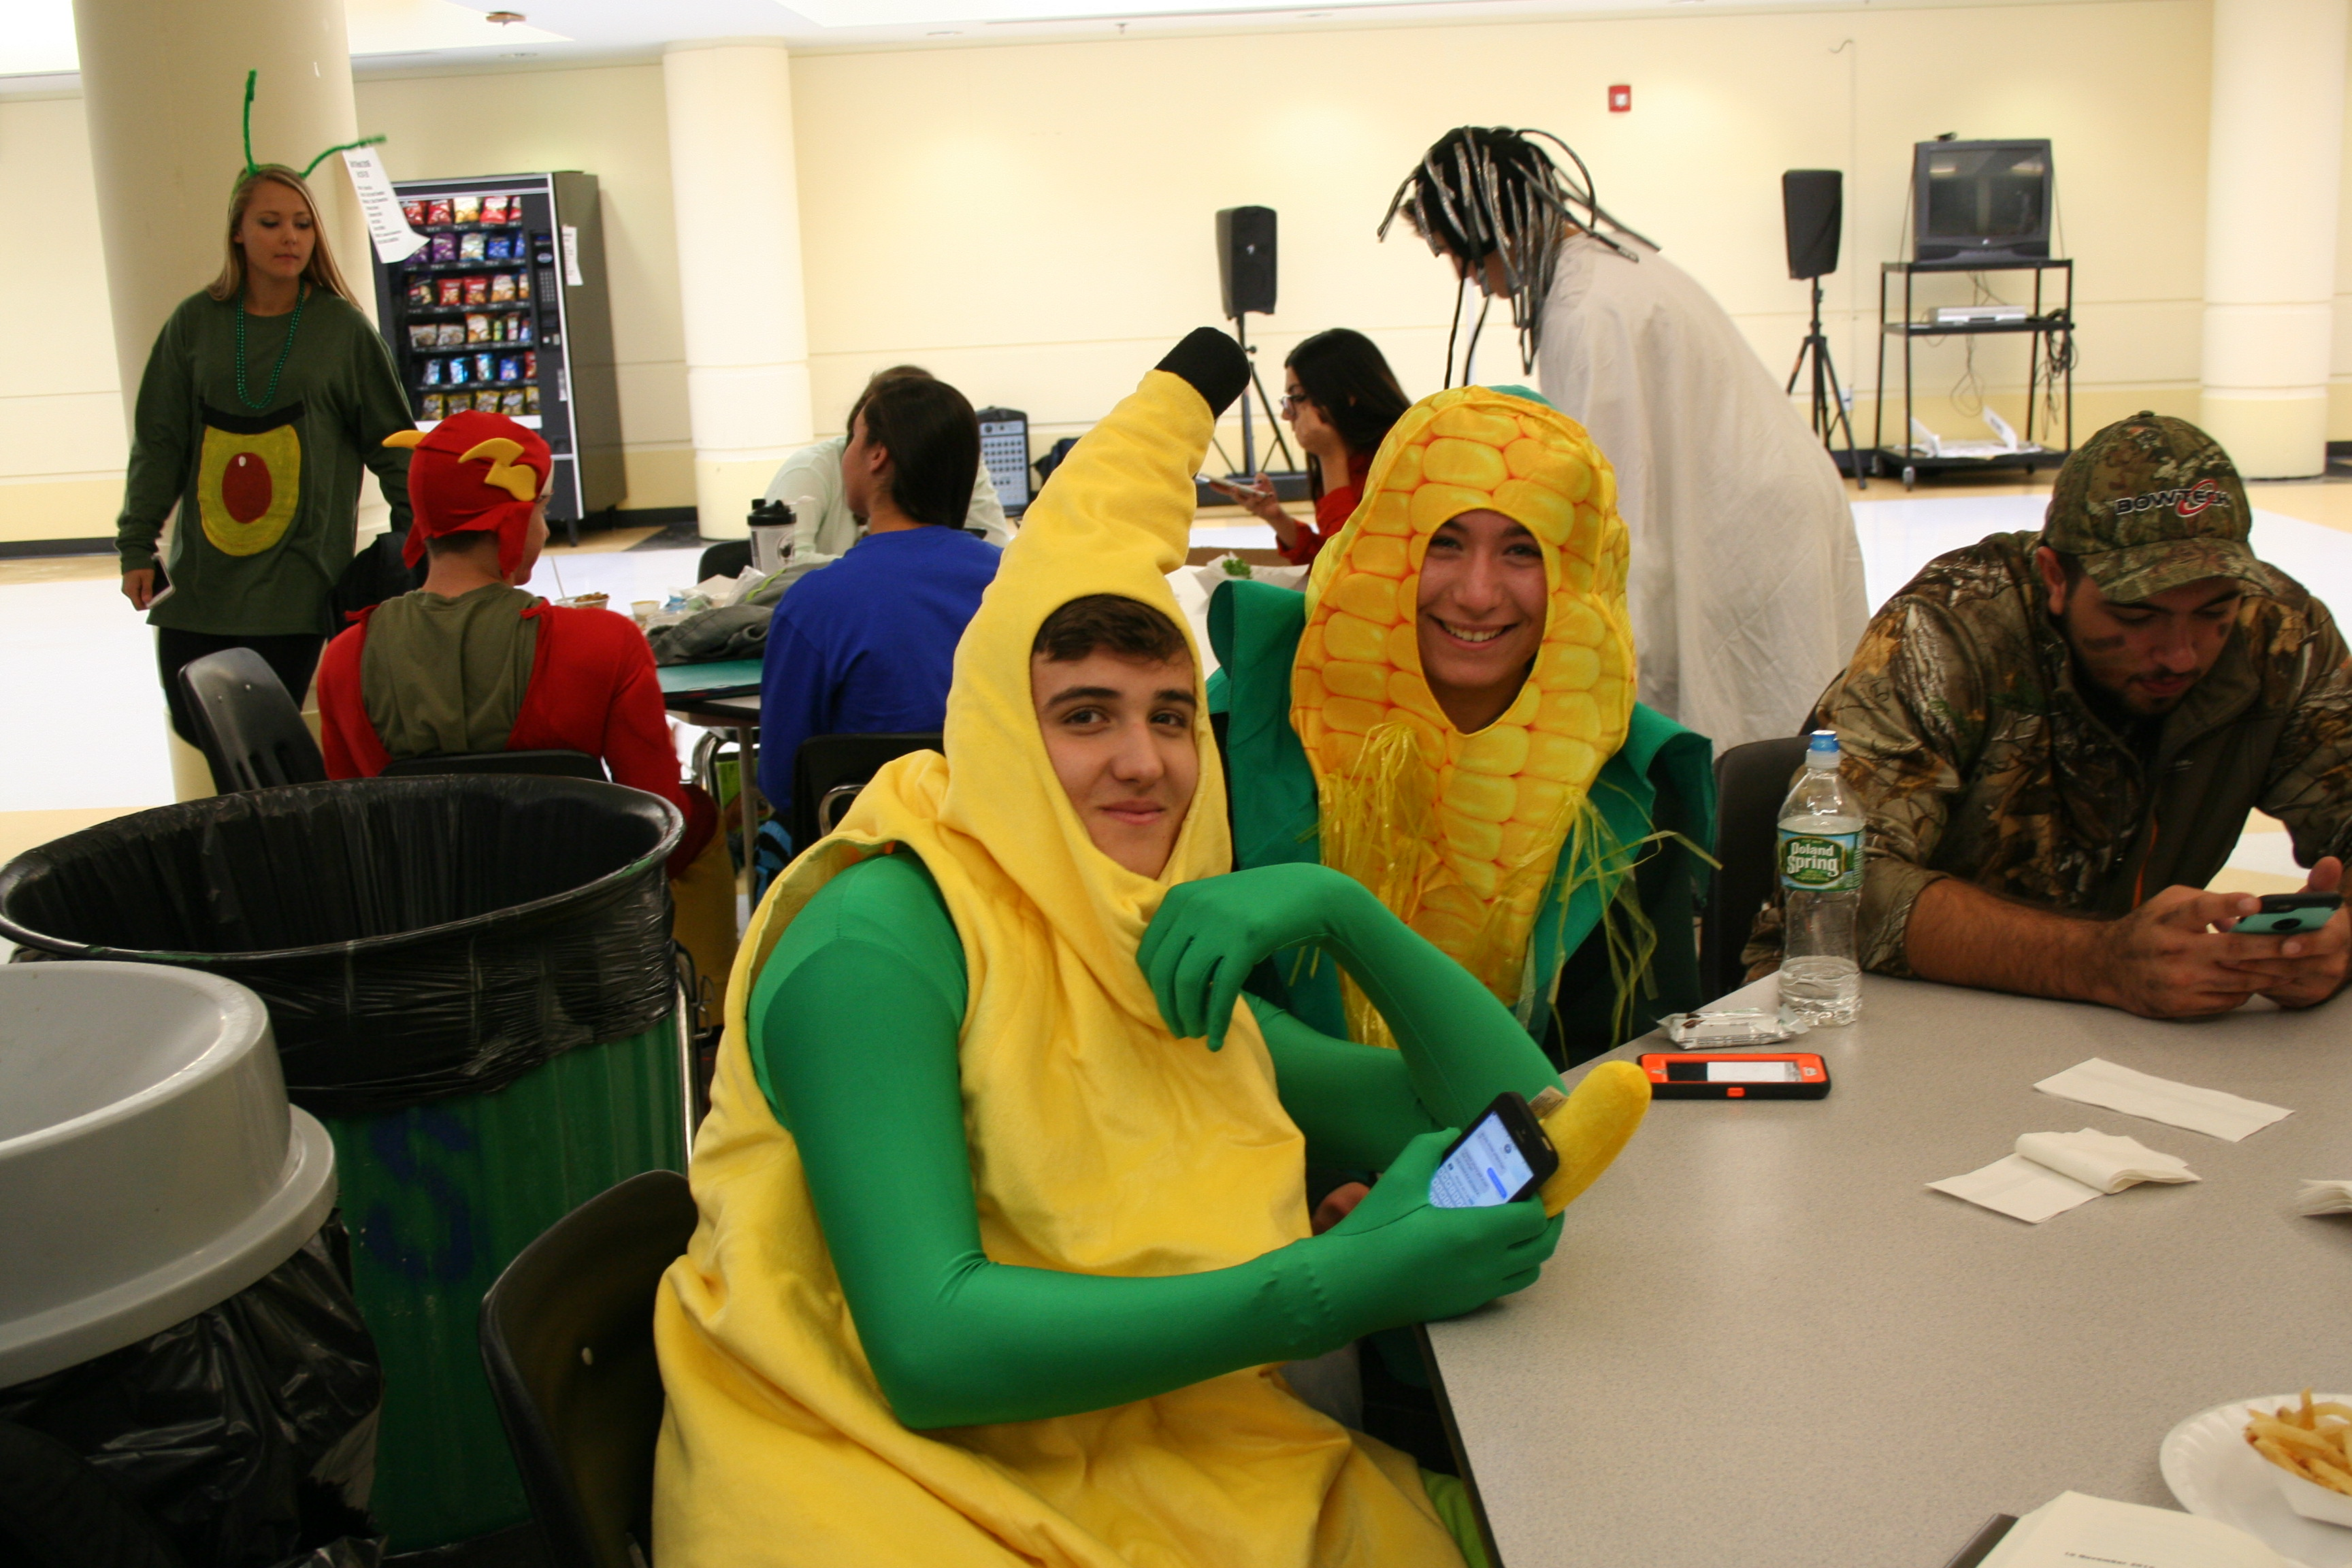 Seniors Christos Koutsitzis and Ally Schneider have a healthy take on SAS in fruit and vegetable costumes.